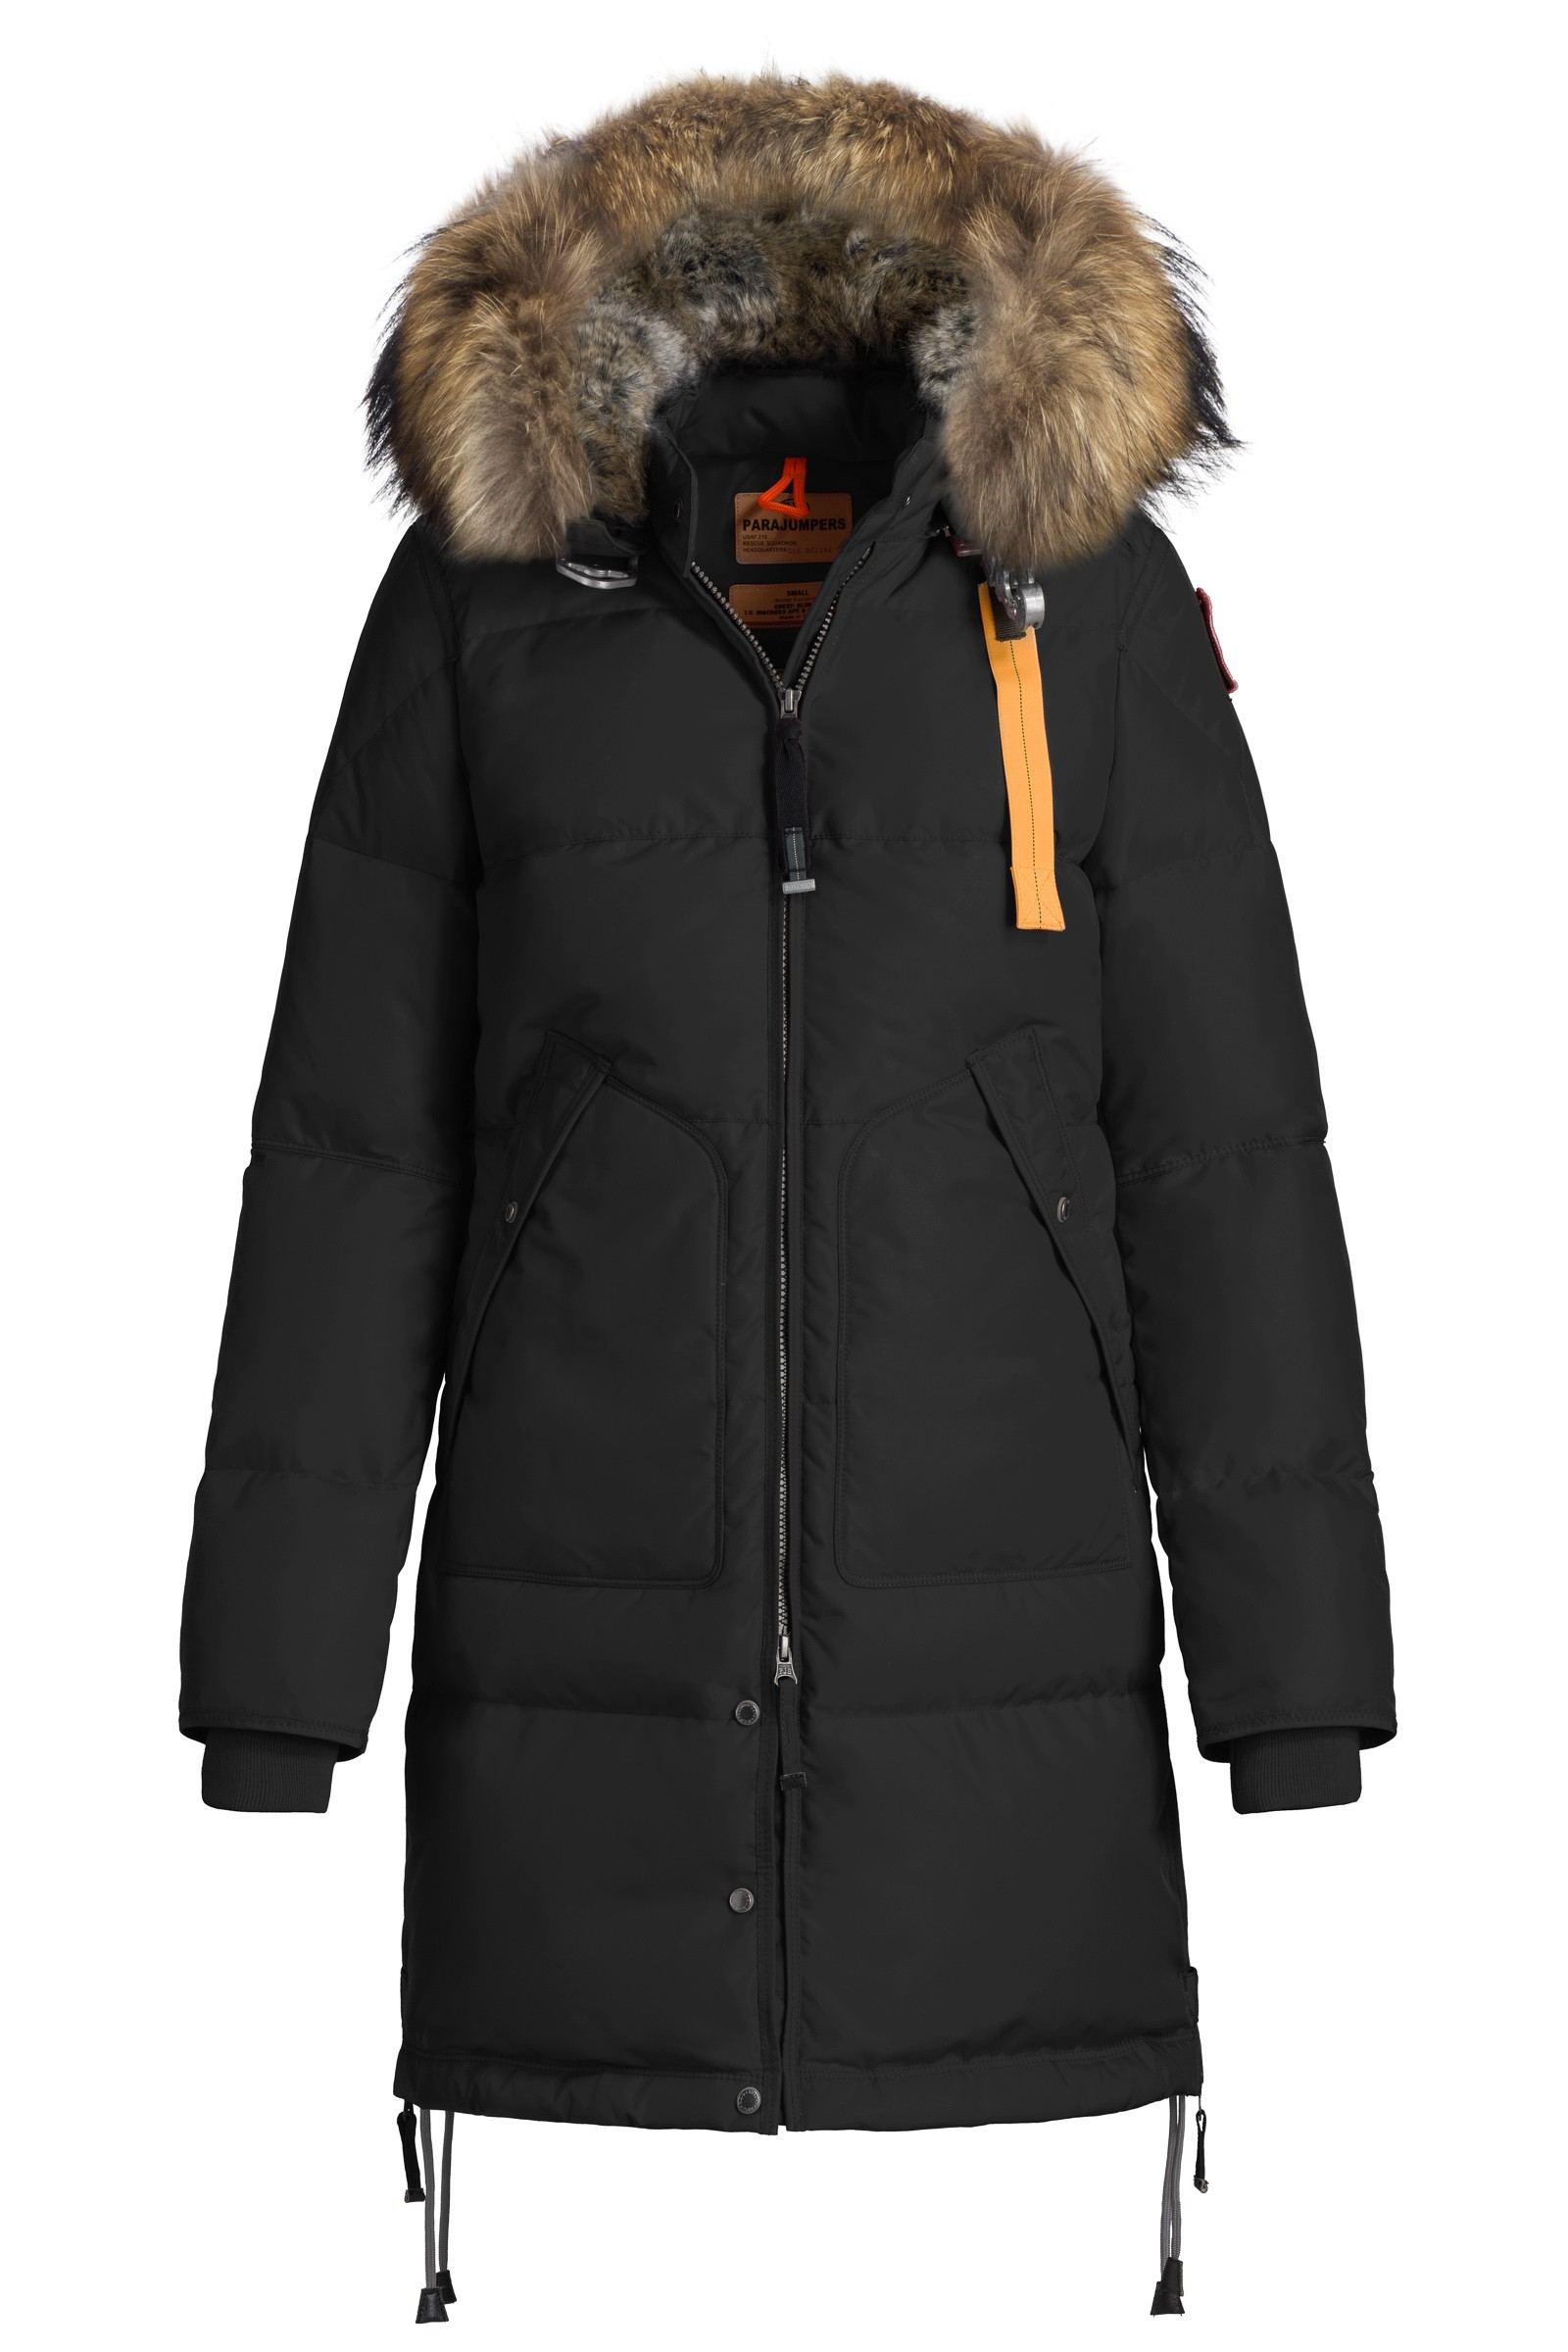 parajumpers Kodiak pl